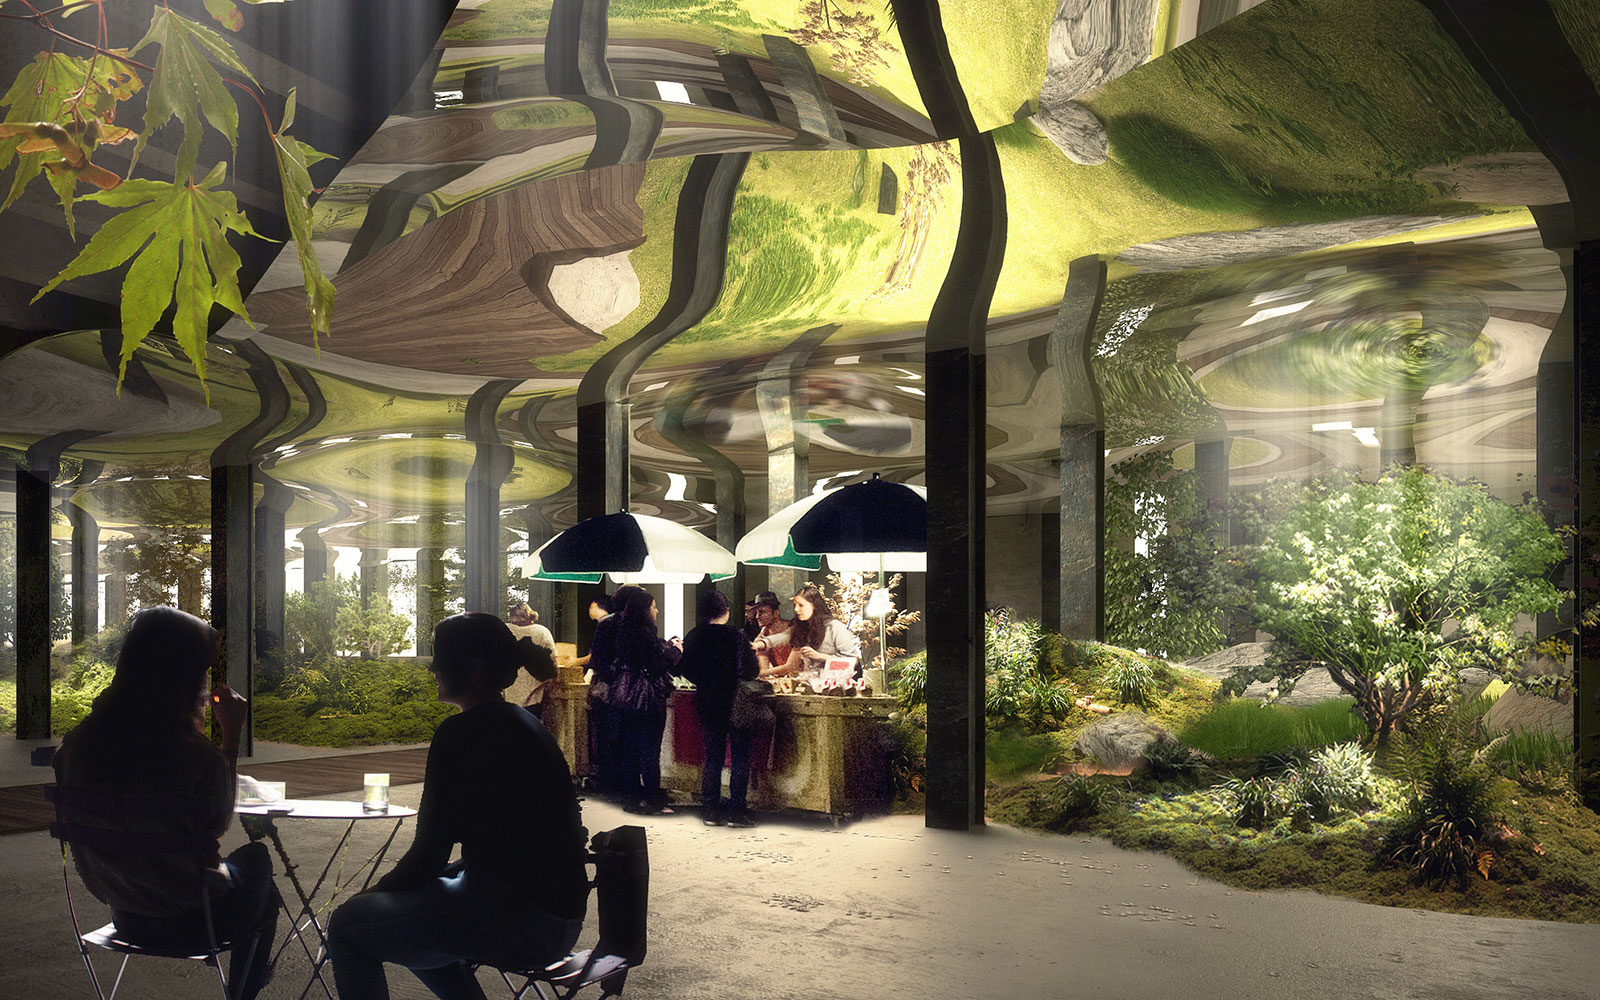 New York City's Underground Park the 'Lowline' Planned for 2021